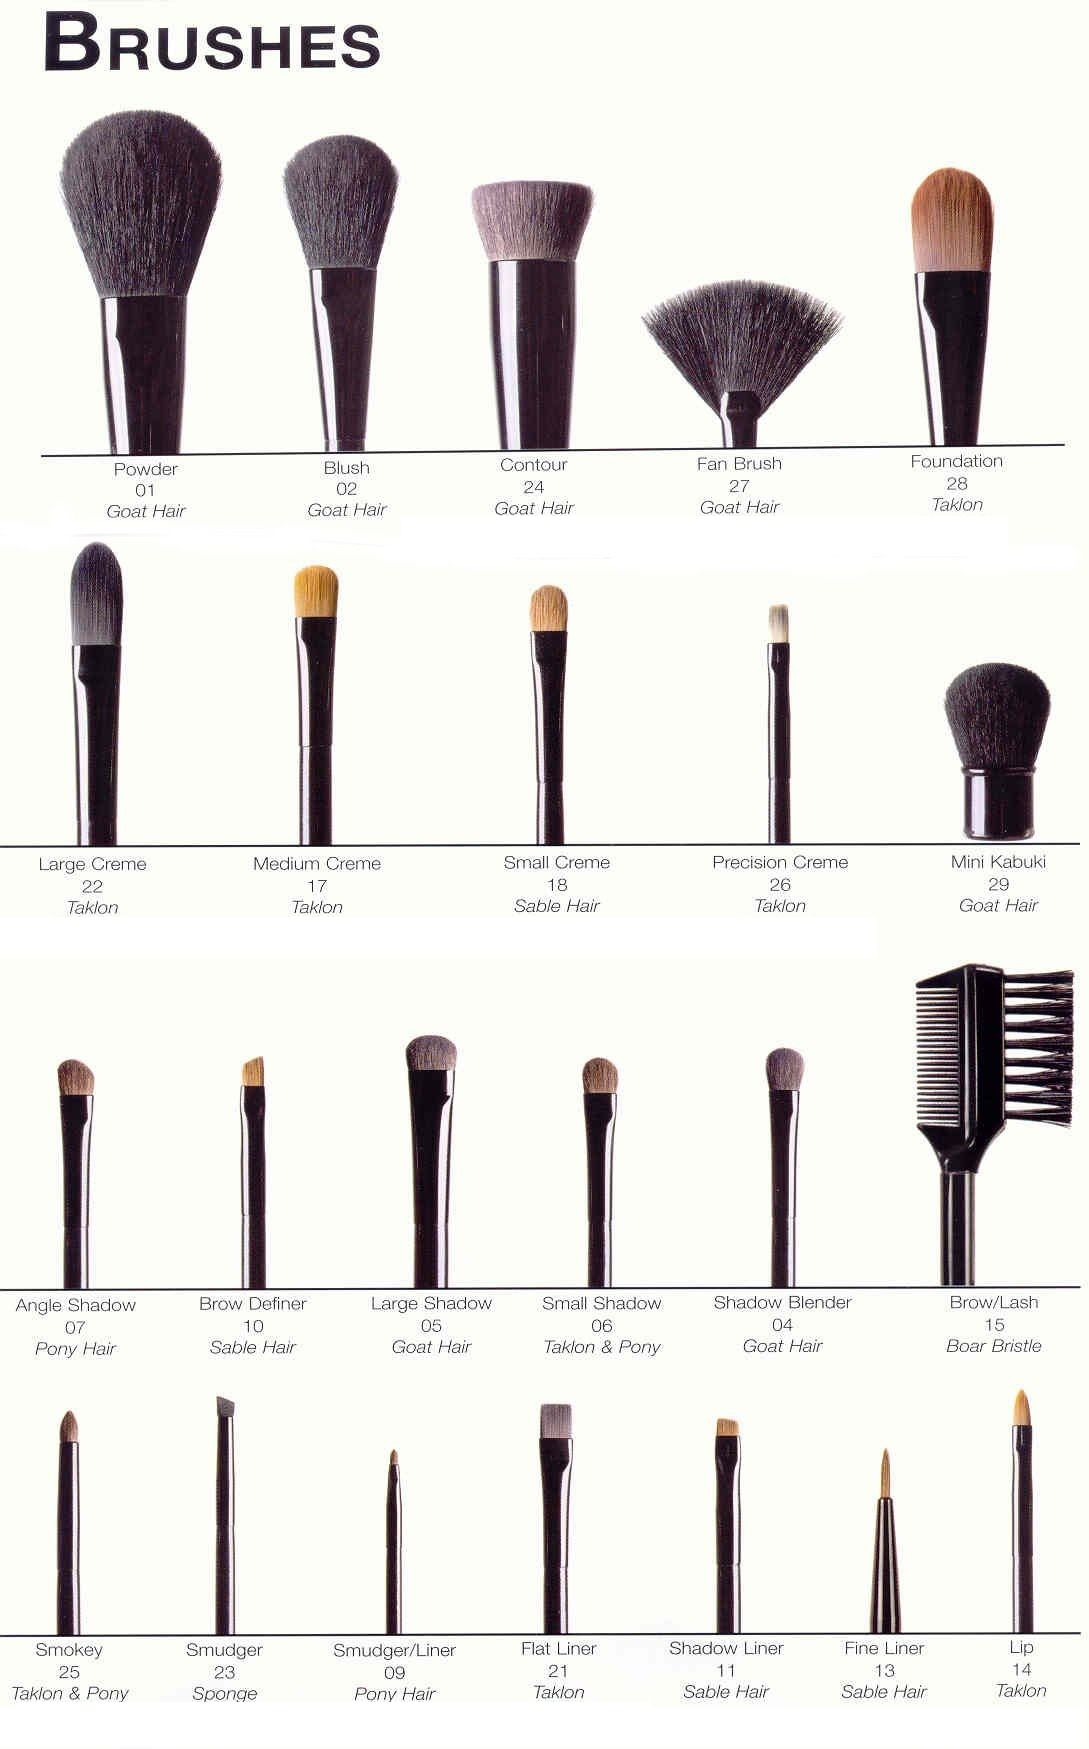 Guide to brushes! Where have you been all my life